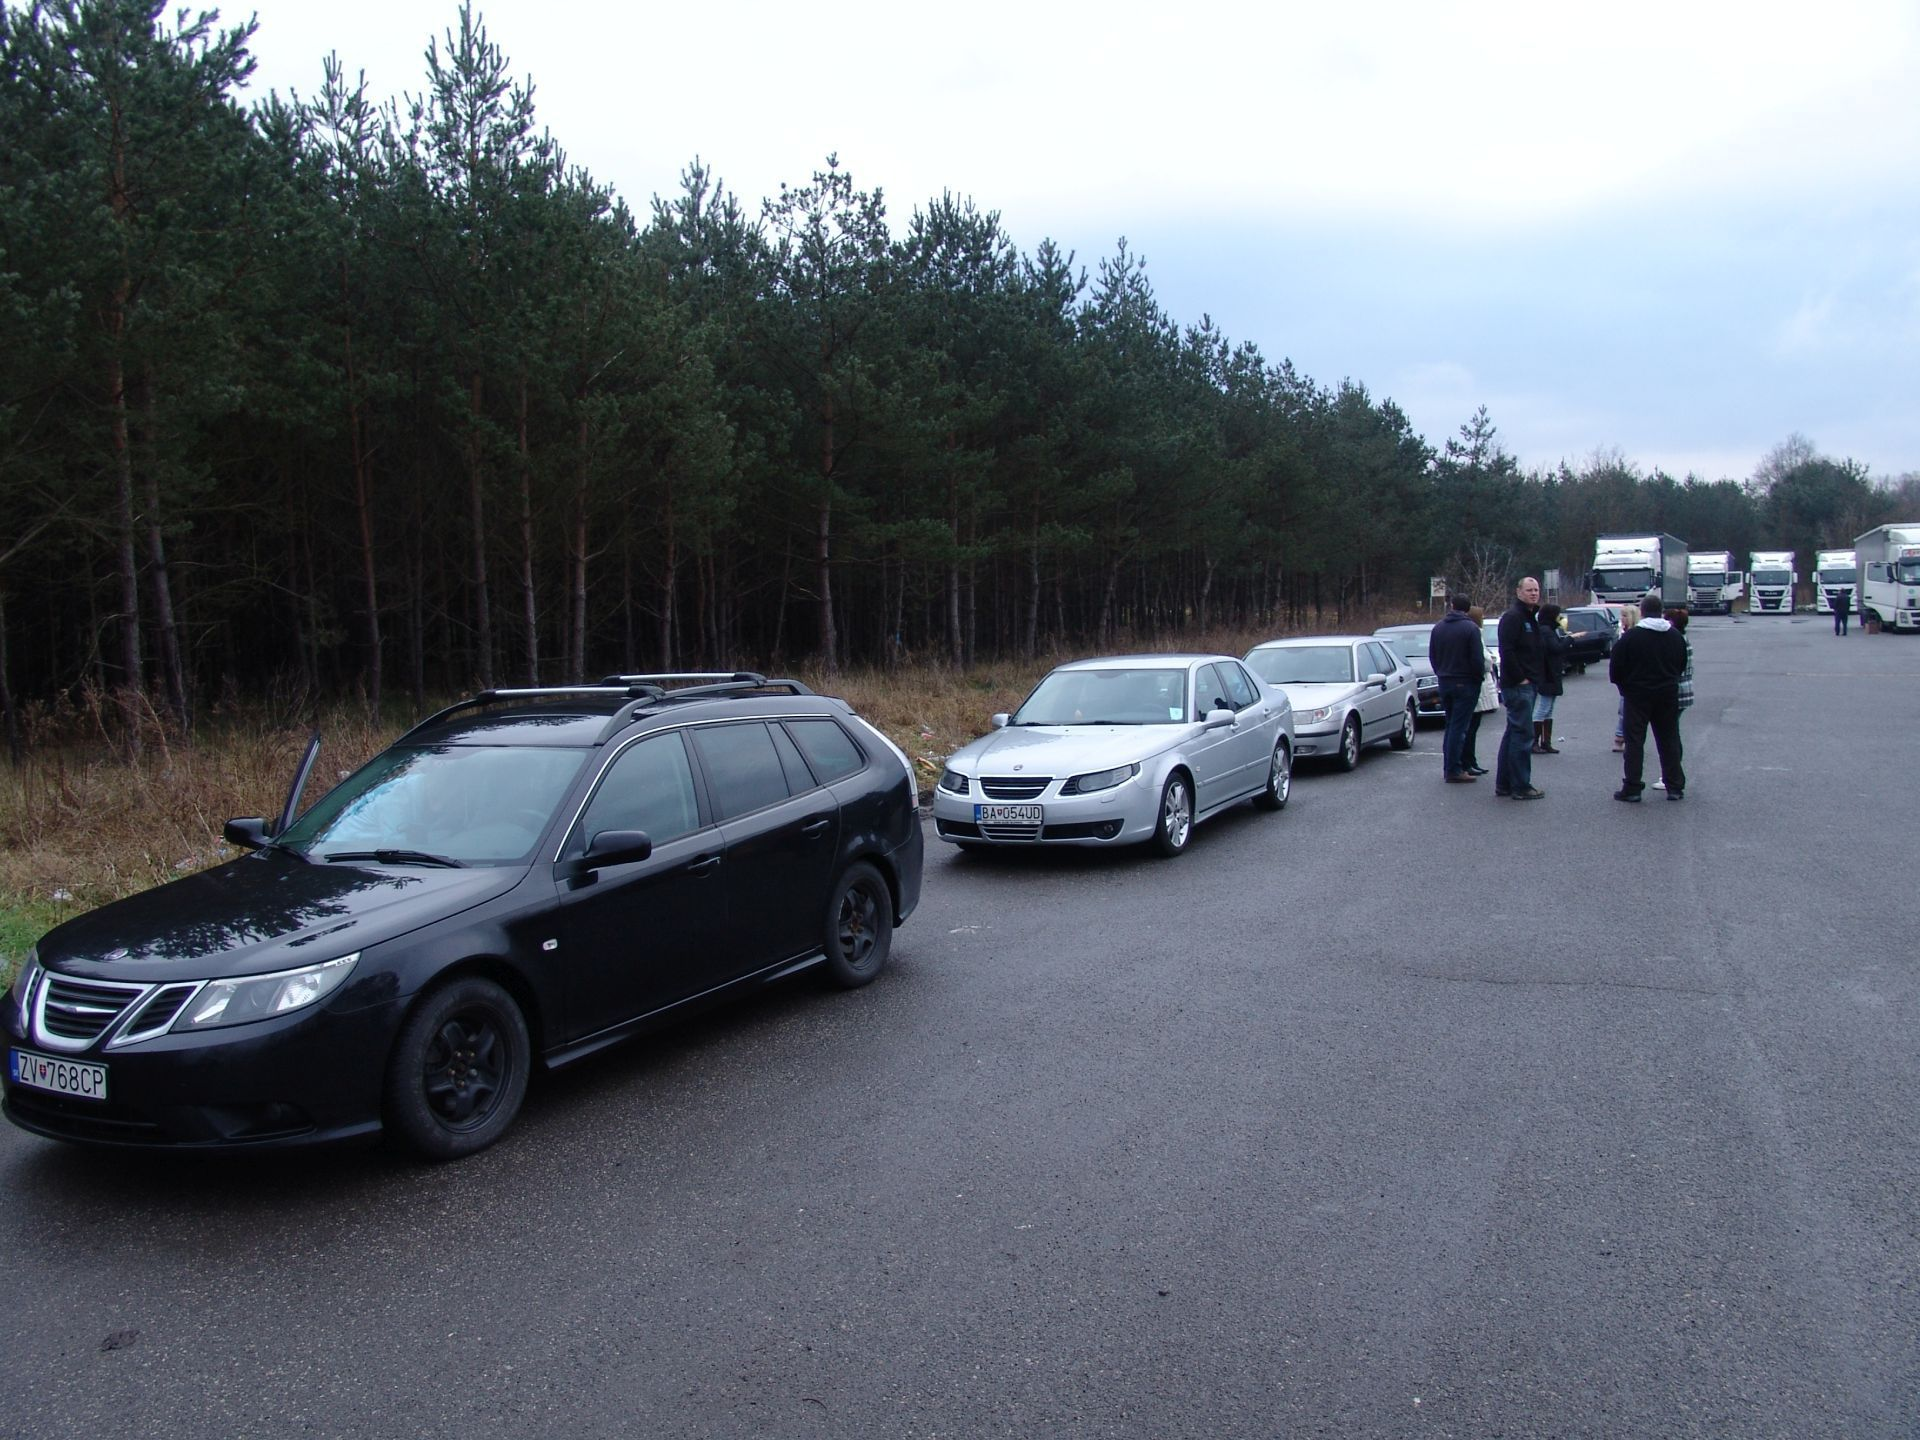 SAAB SUPPORT CONVOY 2015